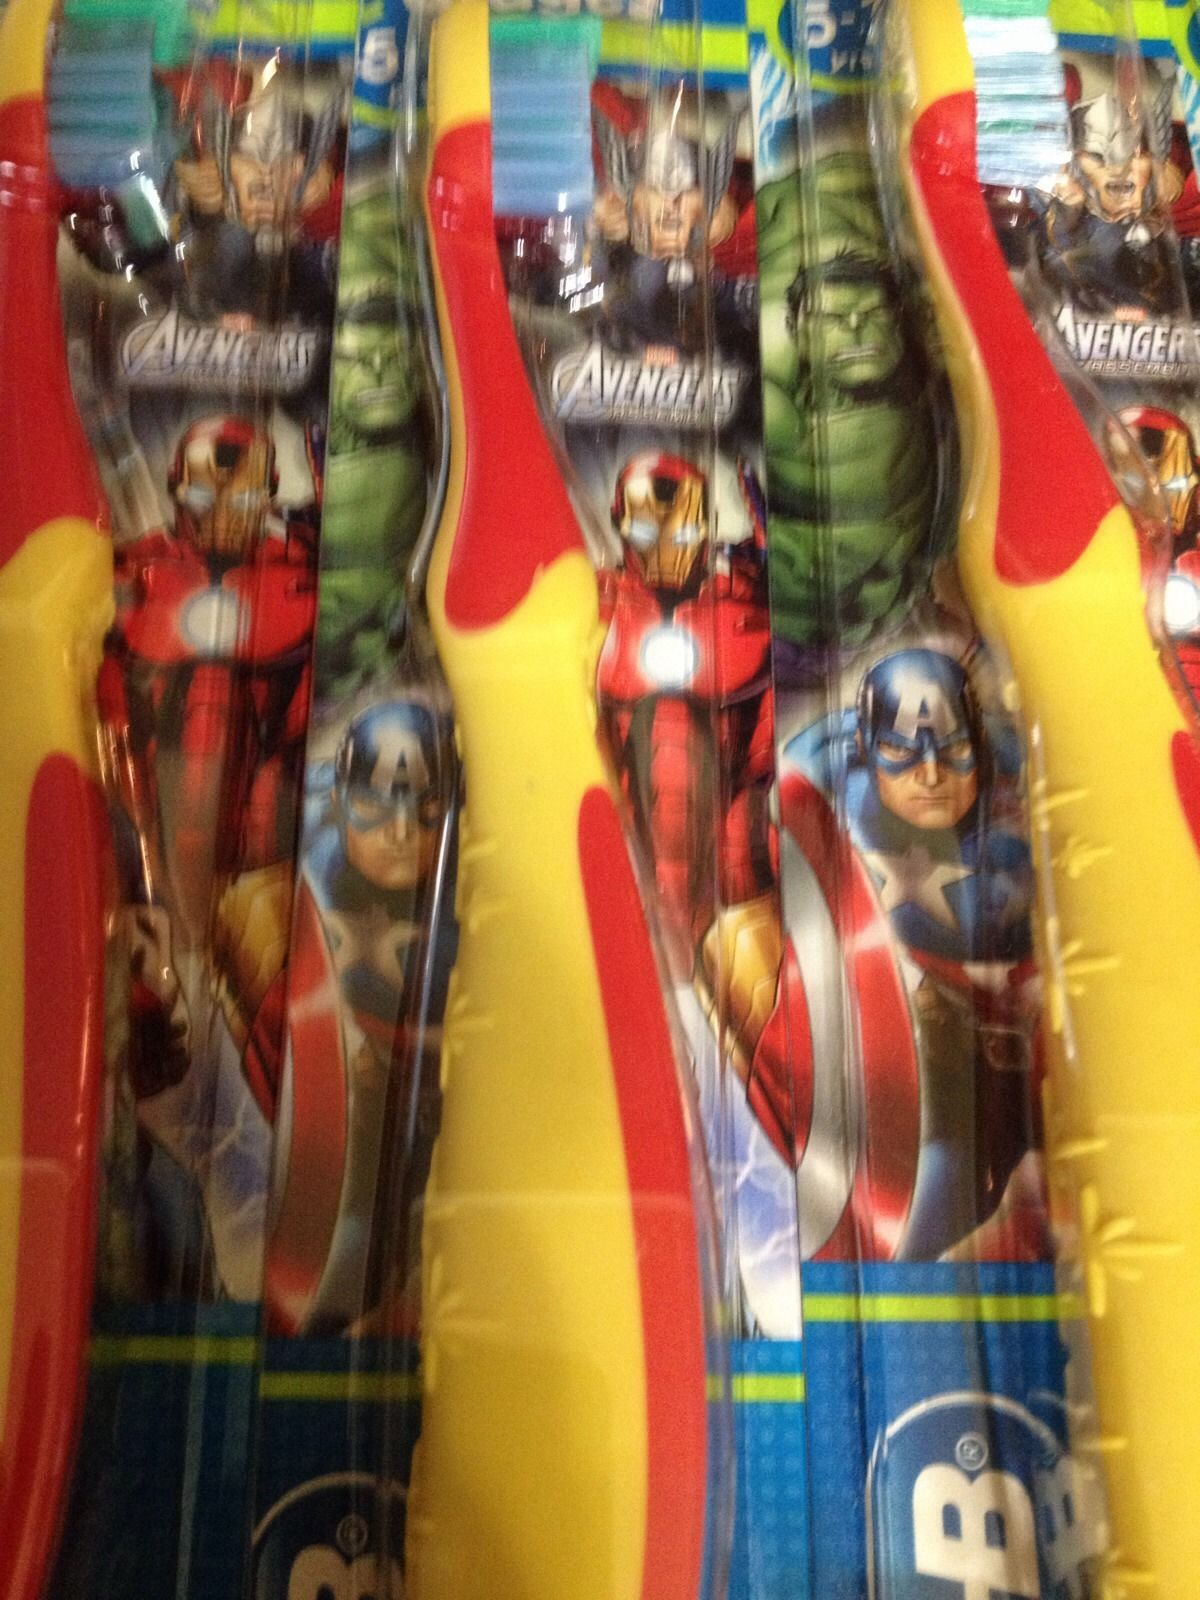 6 Oral B AVENGERS Toothbrushes Sealed Stage 3 (5-7 Years Old) 2  Crest Sparkle